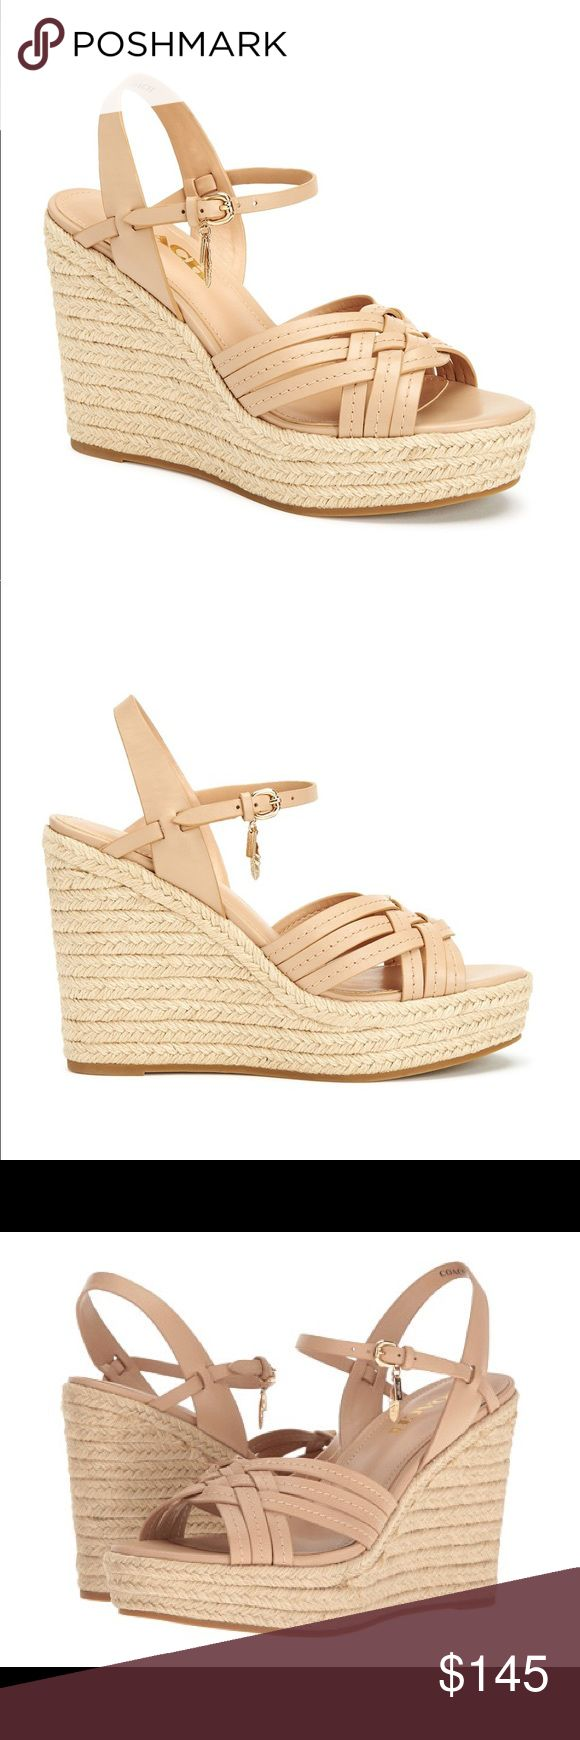 "COACH Dottie High Heel wedge espadrille Sandals new in box  COACH  Dottie High Heel wedge espadrille Sandals  $185  COLOR: Beechwood Beige  size: 7.5  Smooth leather straps paired with beachy braided jute soles make for a sandal ready for both the cabana and the city. The dramatic silhouette is finished with signature COACH hangtag and feather charms. •4.75"" heel •Semi-matte calf leather upper, rubber sole •Imported Coach Shoes Wedges"